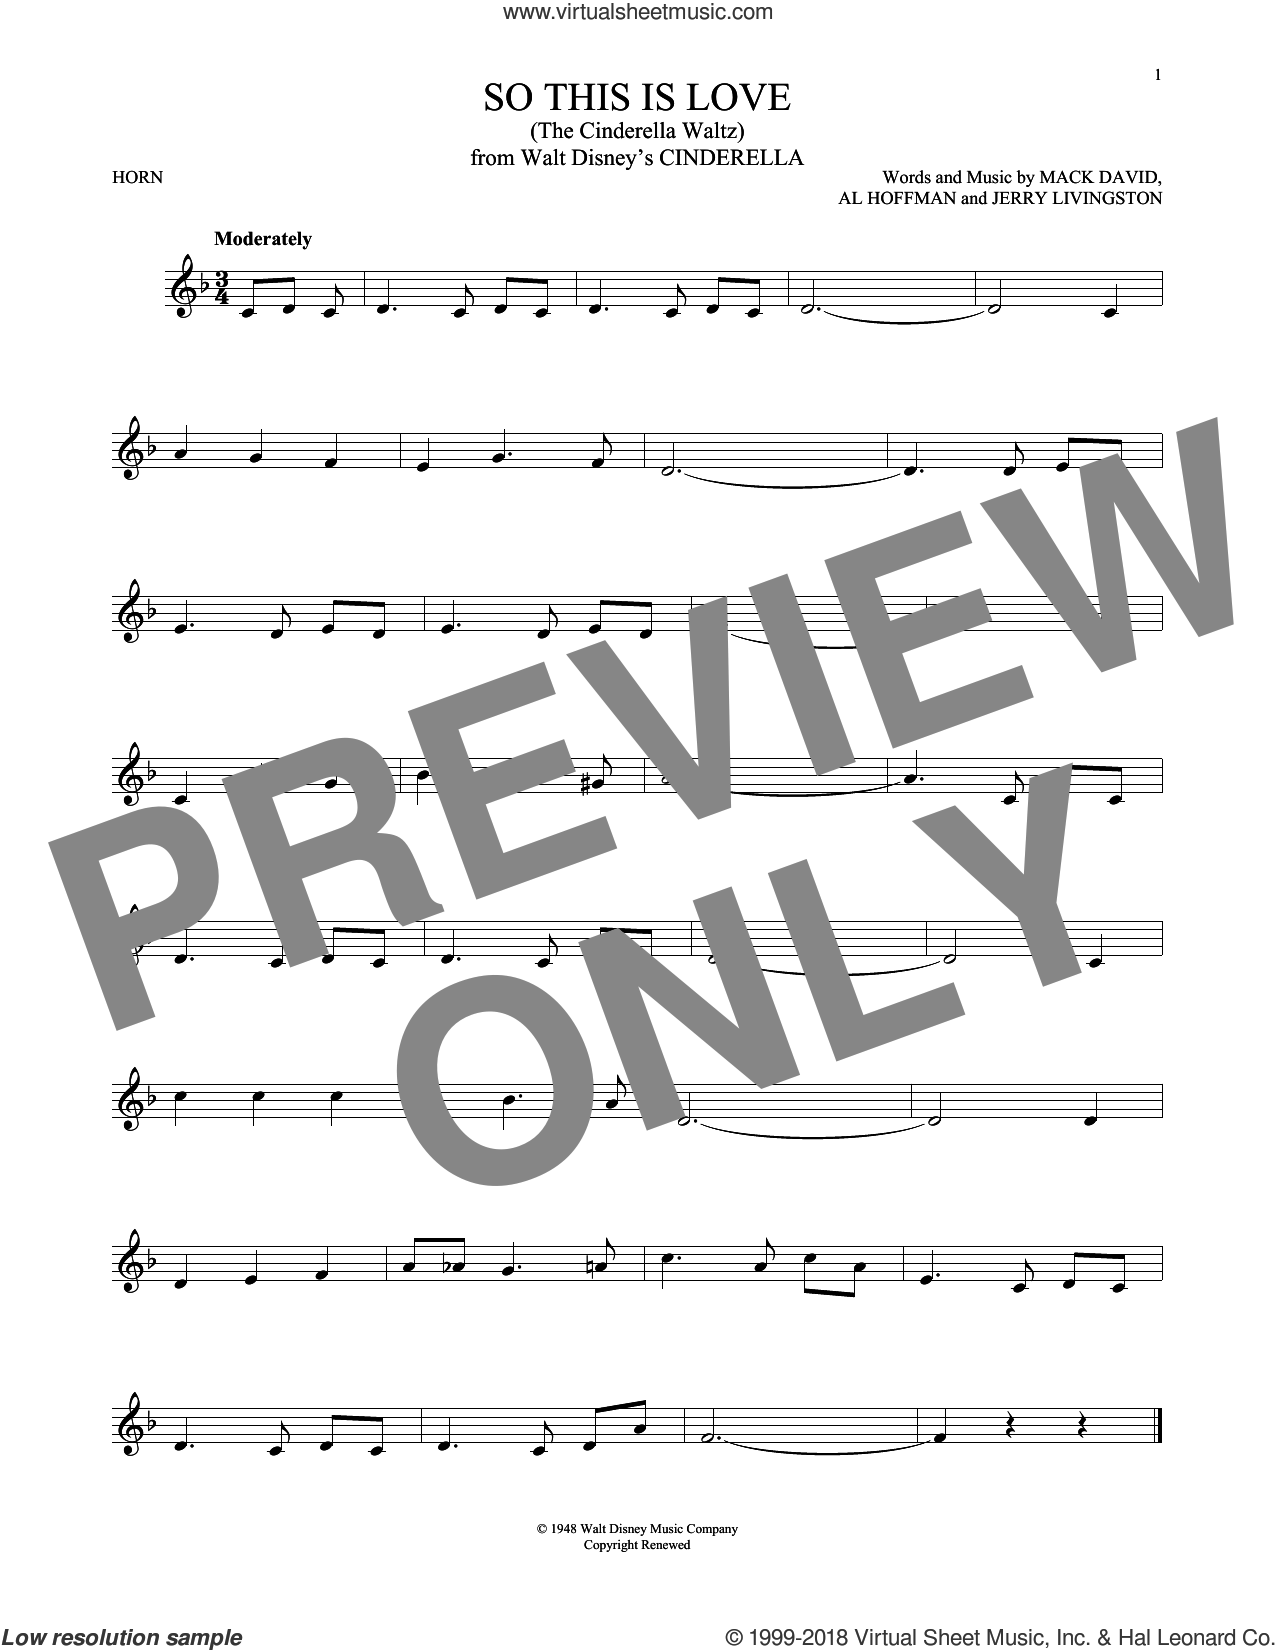 So This Is Love sheet music for horn solo by Al Hoffman, James Ingram, Jerry Livingston, Mack David and Mack David, Al Hoffman and Jerry Livingston, intermediate skill level